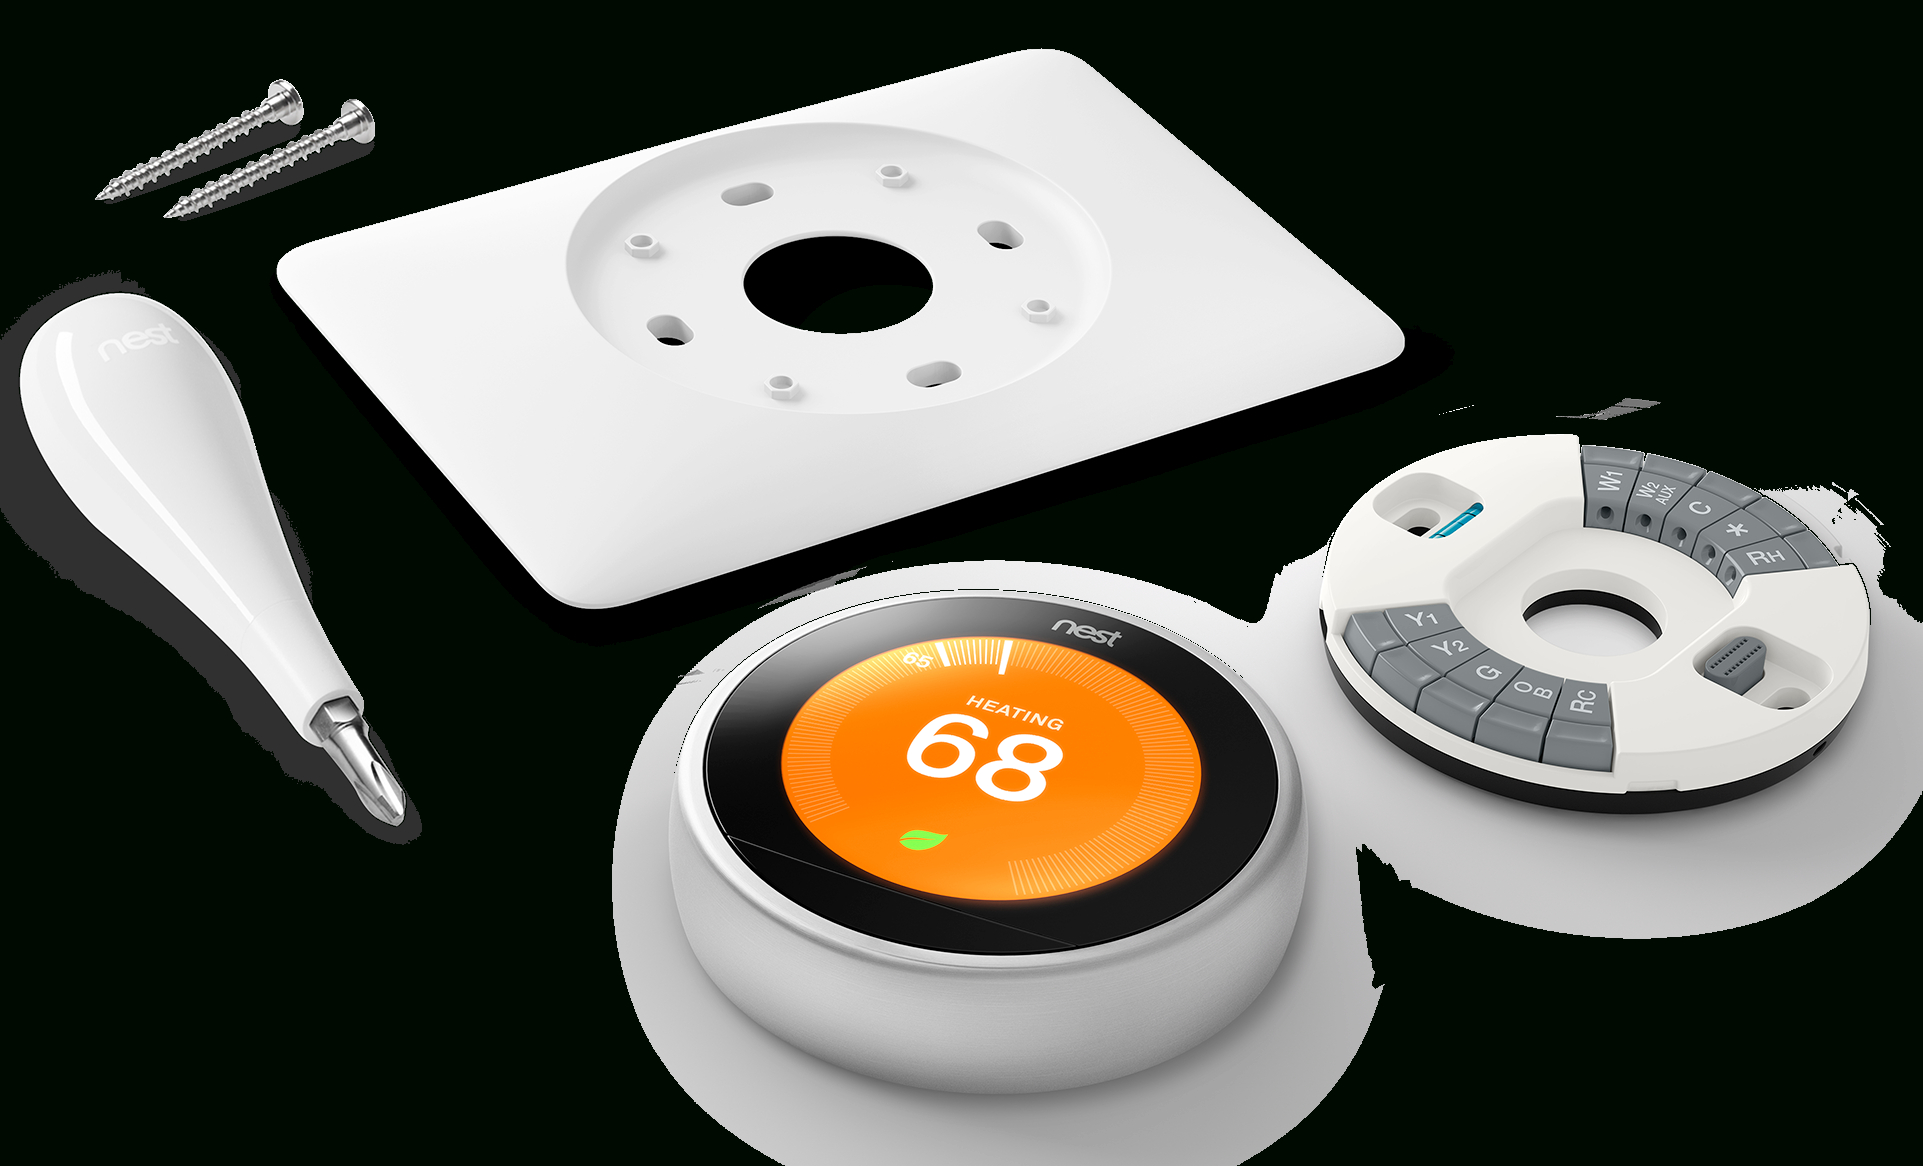 How To Install Your Nest Thermostat - Nest Thermostat Wiring Diagram.